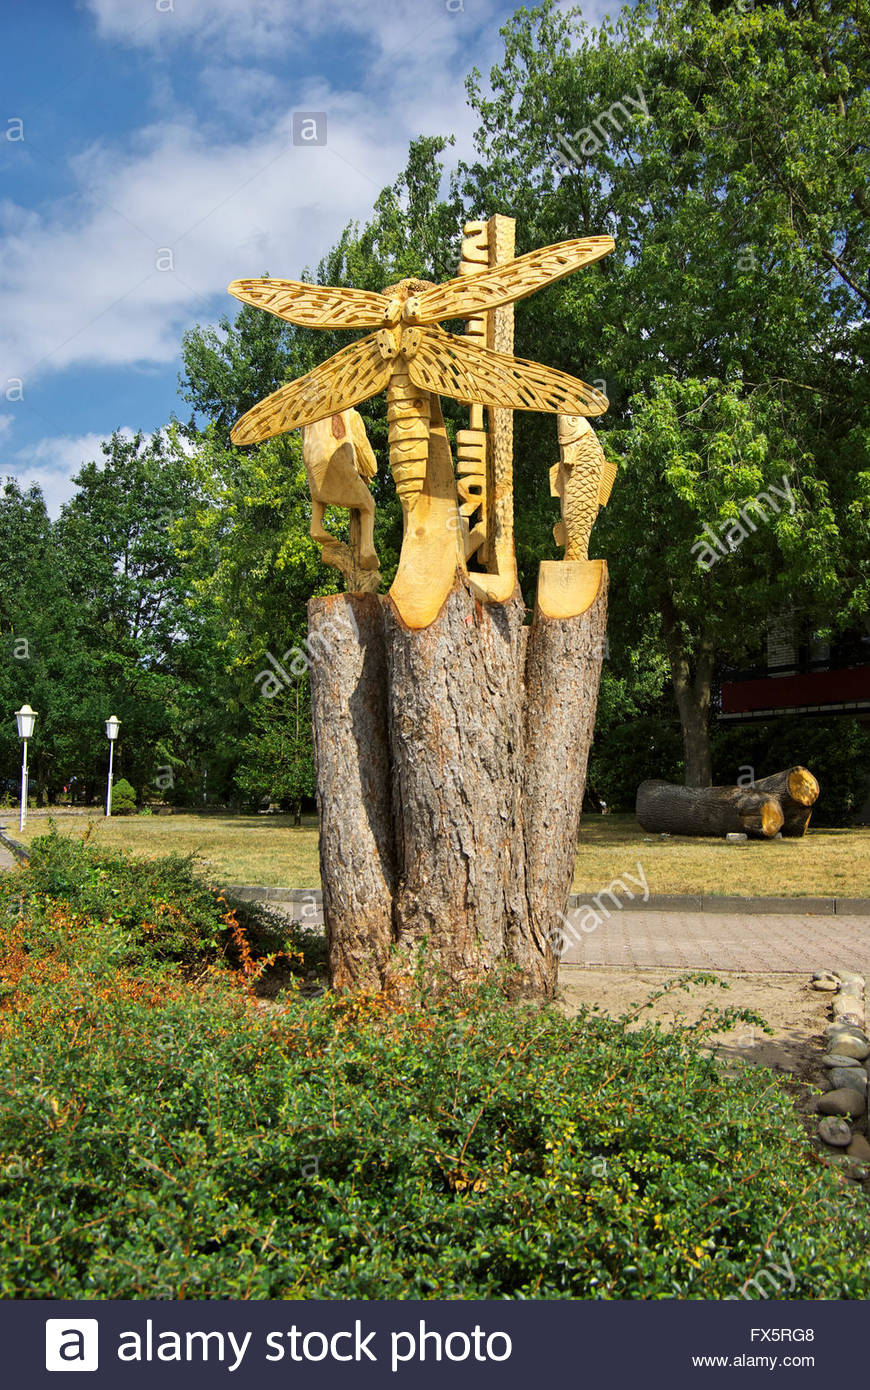 Wood Sculpture By Horst Nebel At The Haus Am See   Seestern, By The Shore  Of Lake Haselünne In Emsland, Lower Saxony, Germany